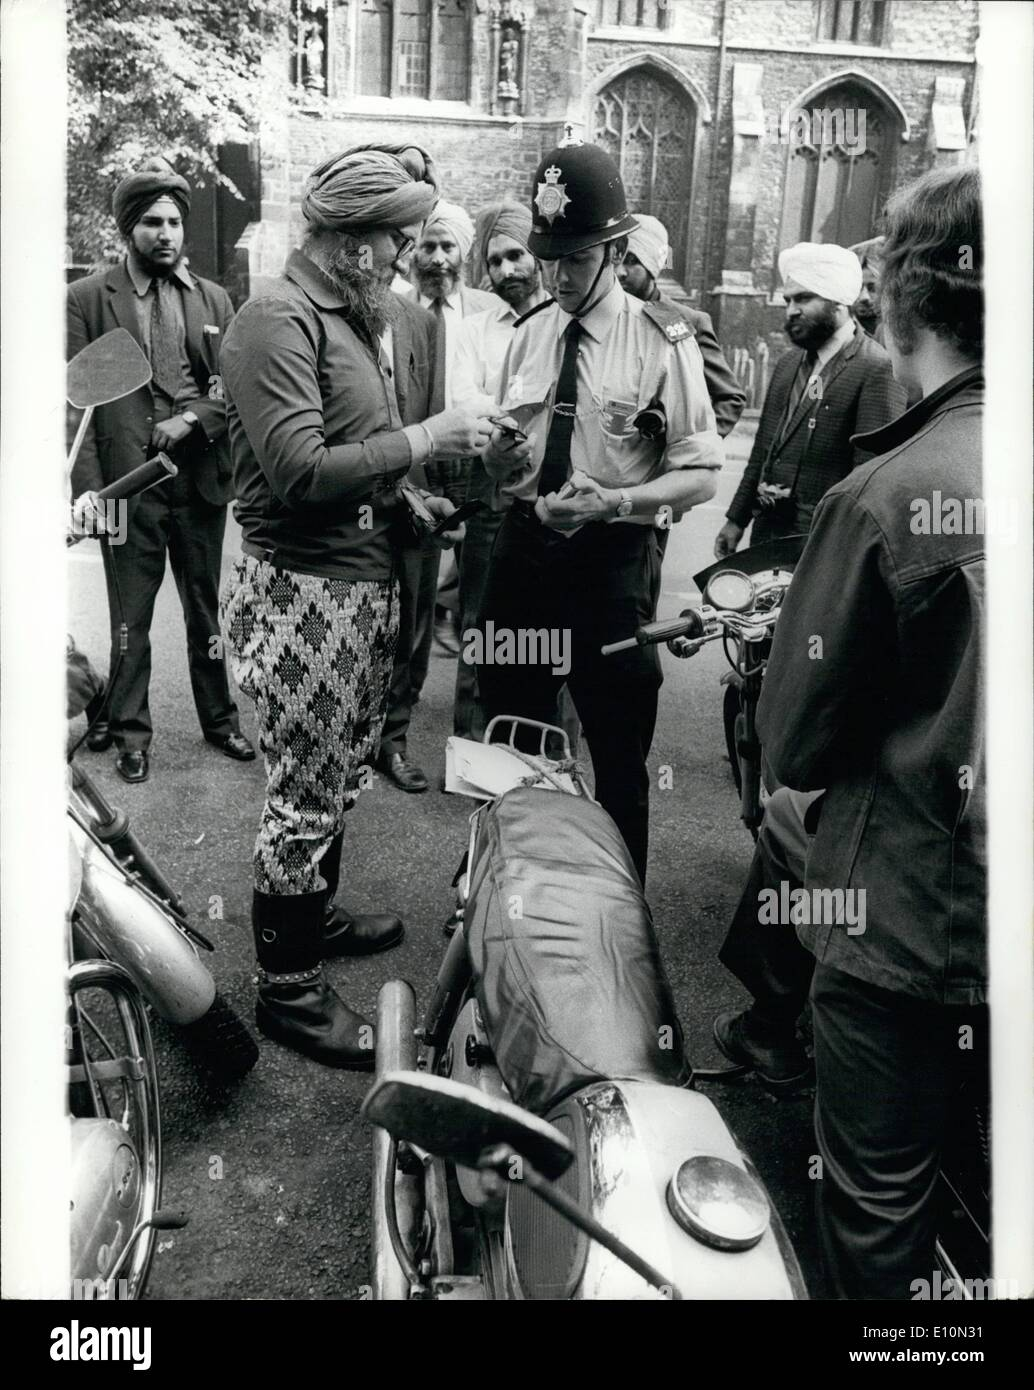 Aug. 08, 1973 - Sikh Defies Ruling On Crash Helmets: An English-born Sikh was fined 1 on each of 14 summons for failing to wear a crash helmet in accordance with the new motor cycle regulations, when he appeared at Bedford Magistrates court yesterday. He drove away from court still without protective headgear. Hans Walter Powles, of Salisbury Road, Bedford who changed his name to Mohan Hartung Singh when he was converted to the Sikh religion two years ago, told the magistrates his head belonged to God and would not remove his turban to put on a crash helmet - Stock Image